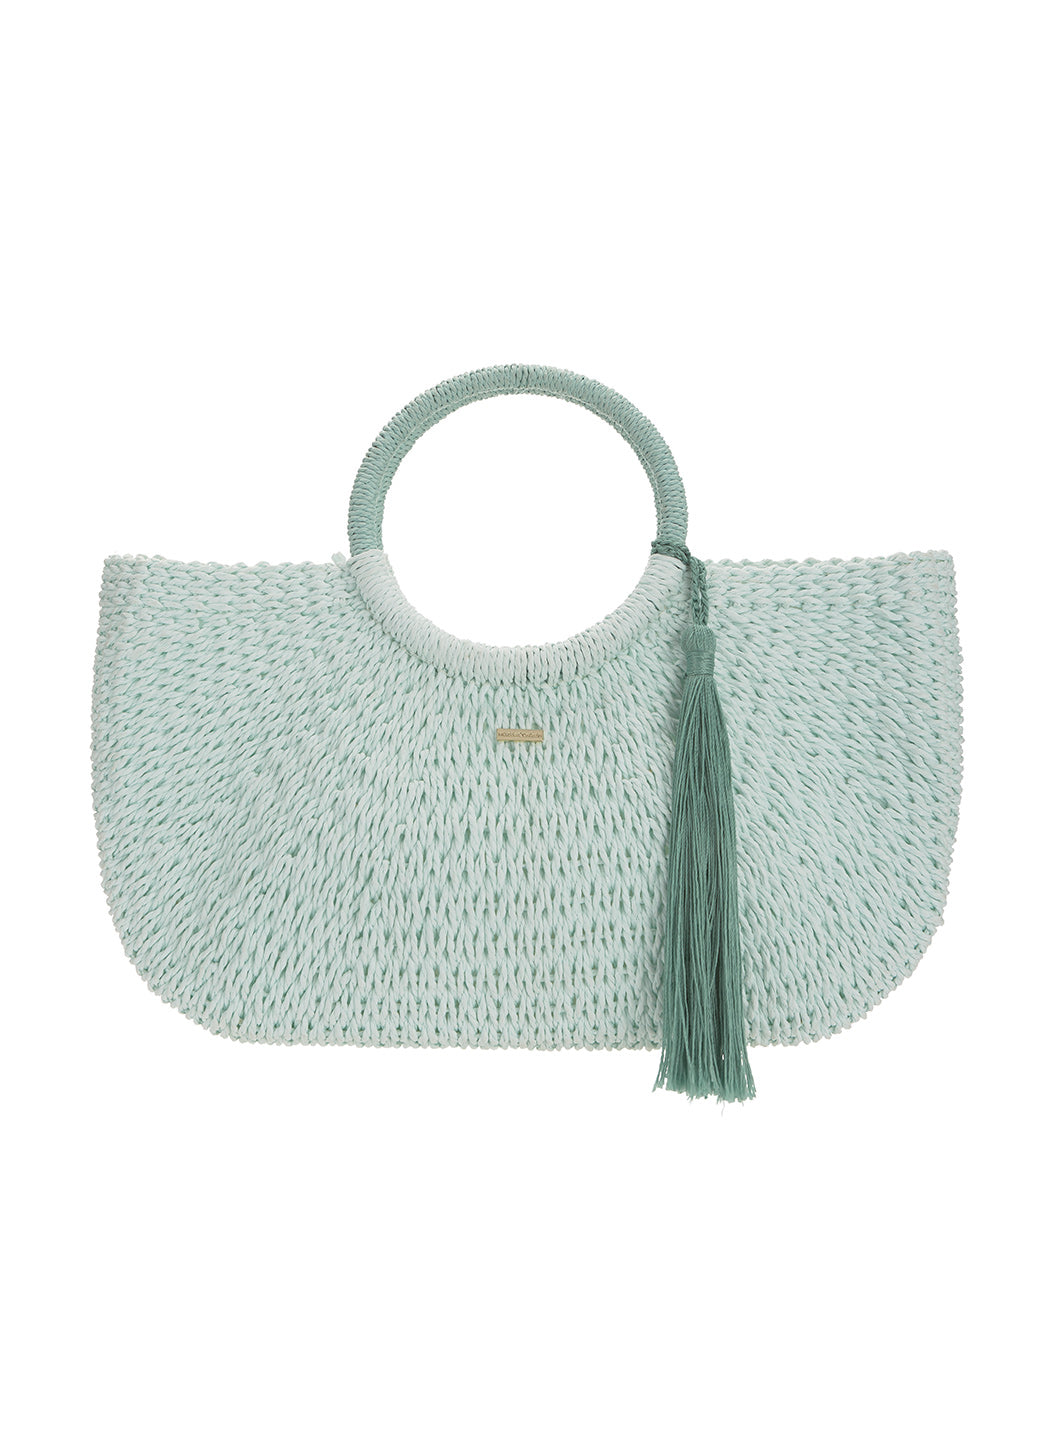 Sorrento Woven Basket Tassle Bag Mint